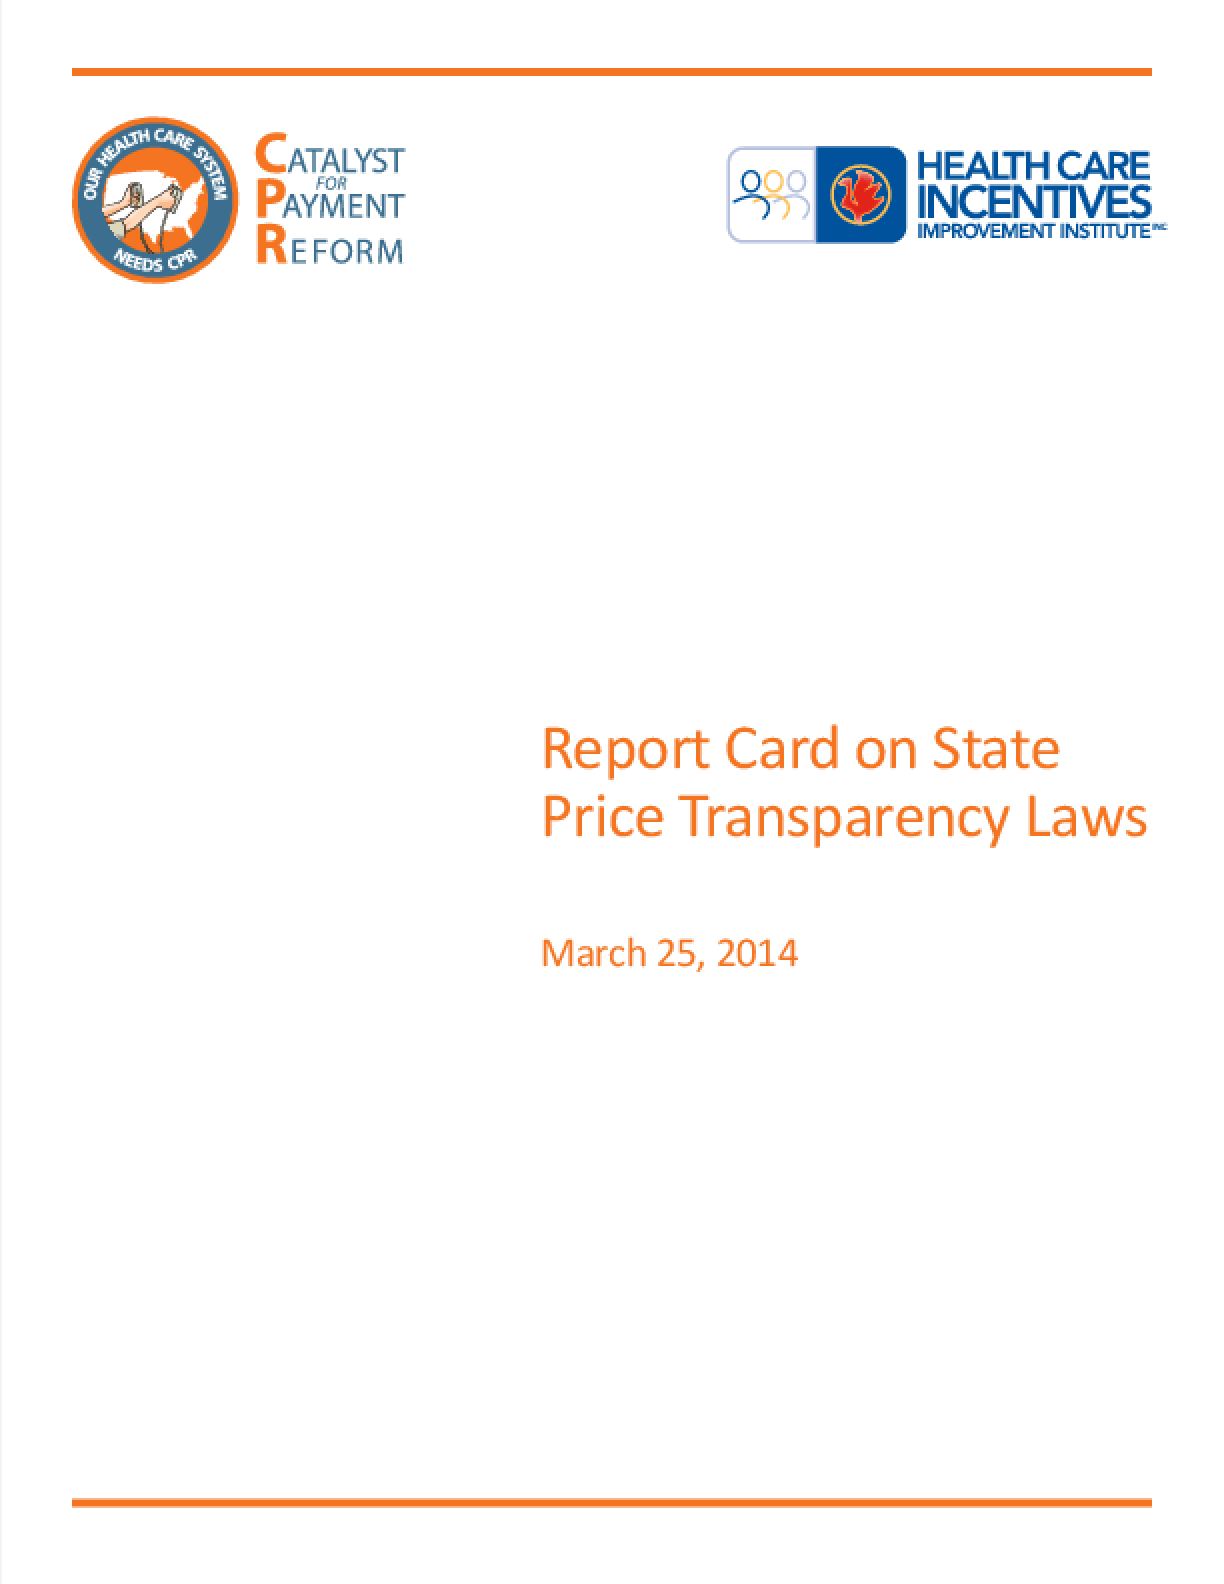 Report Card on State Price Transparency Laws